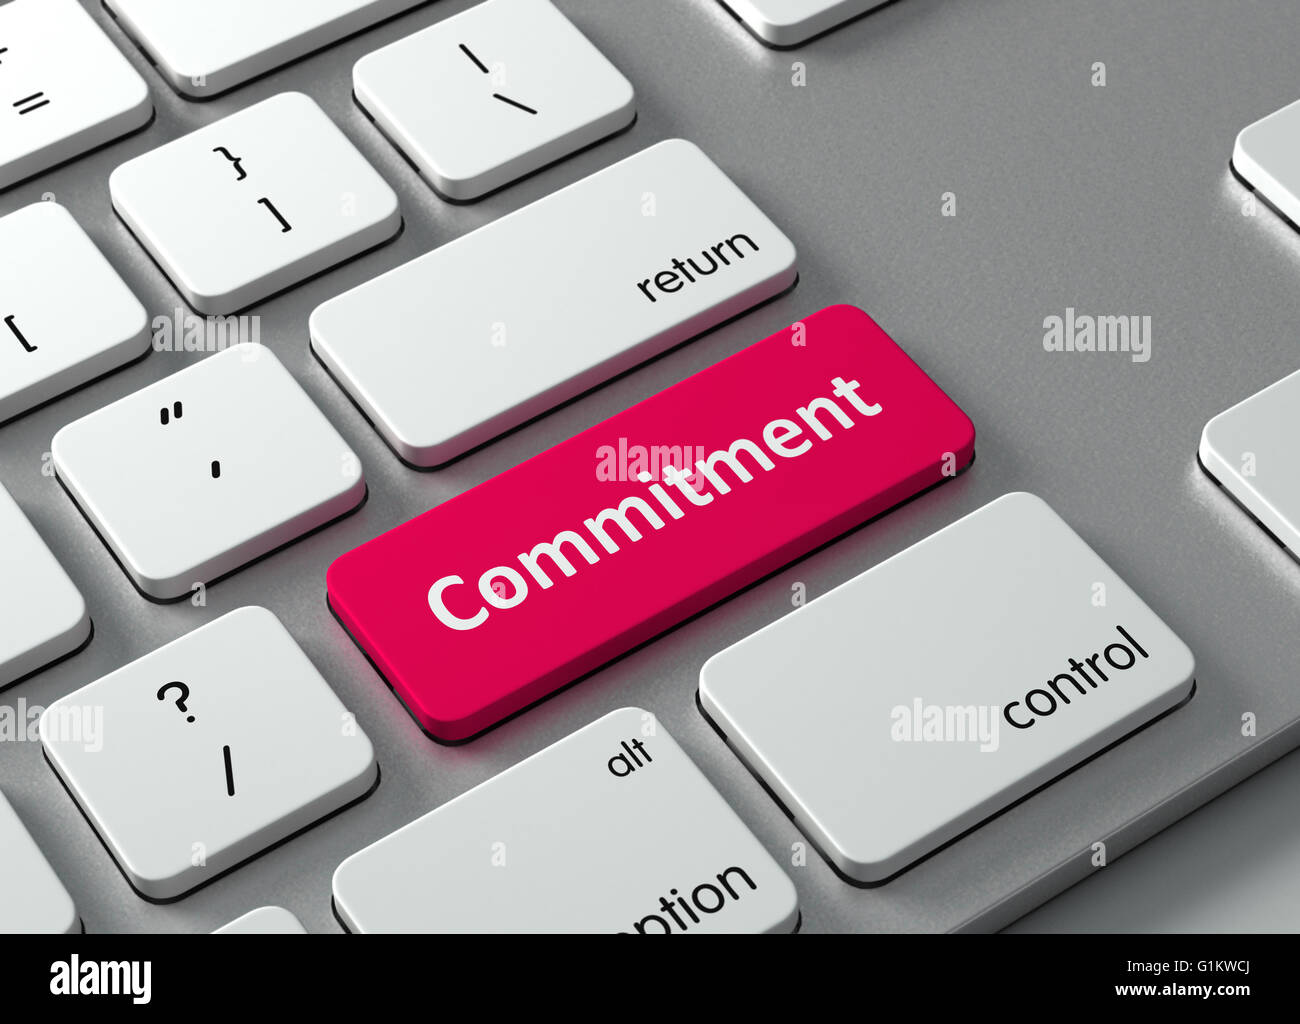 A keyboard with a red button Commitment - Stock Image